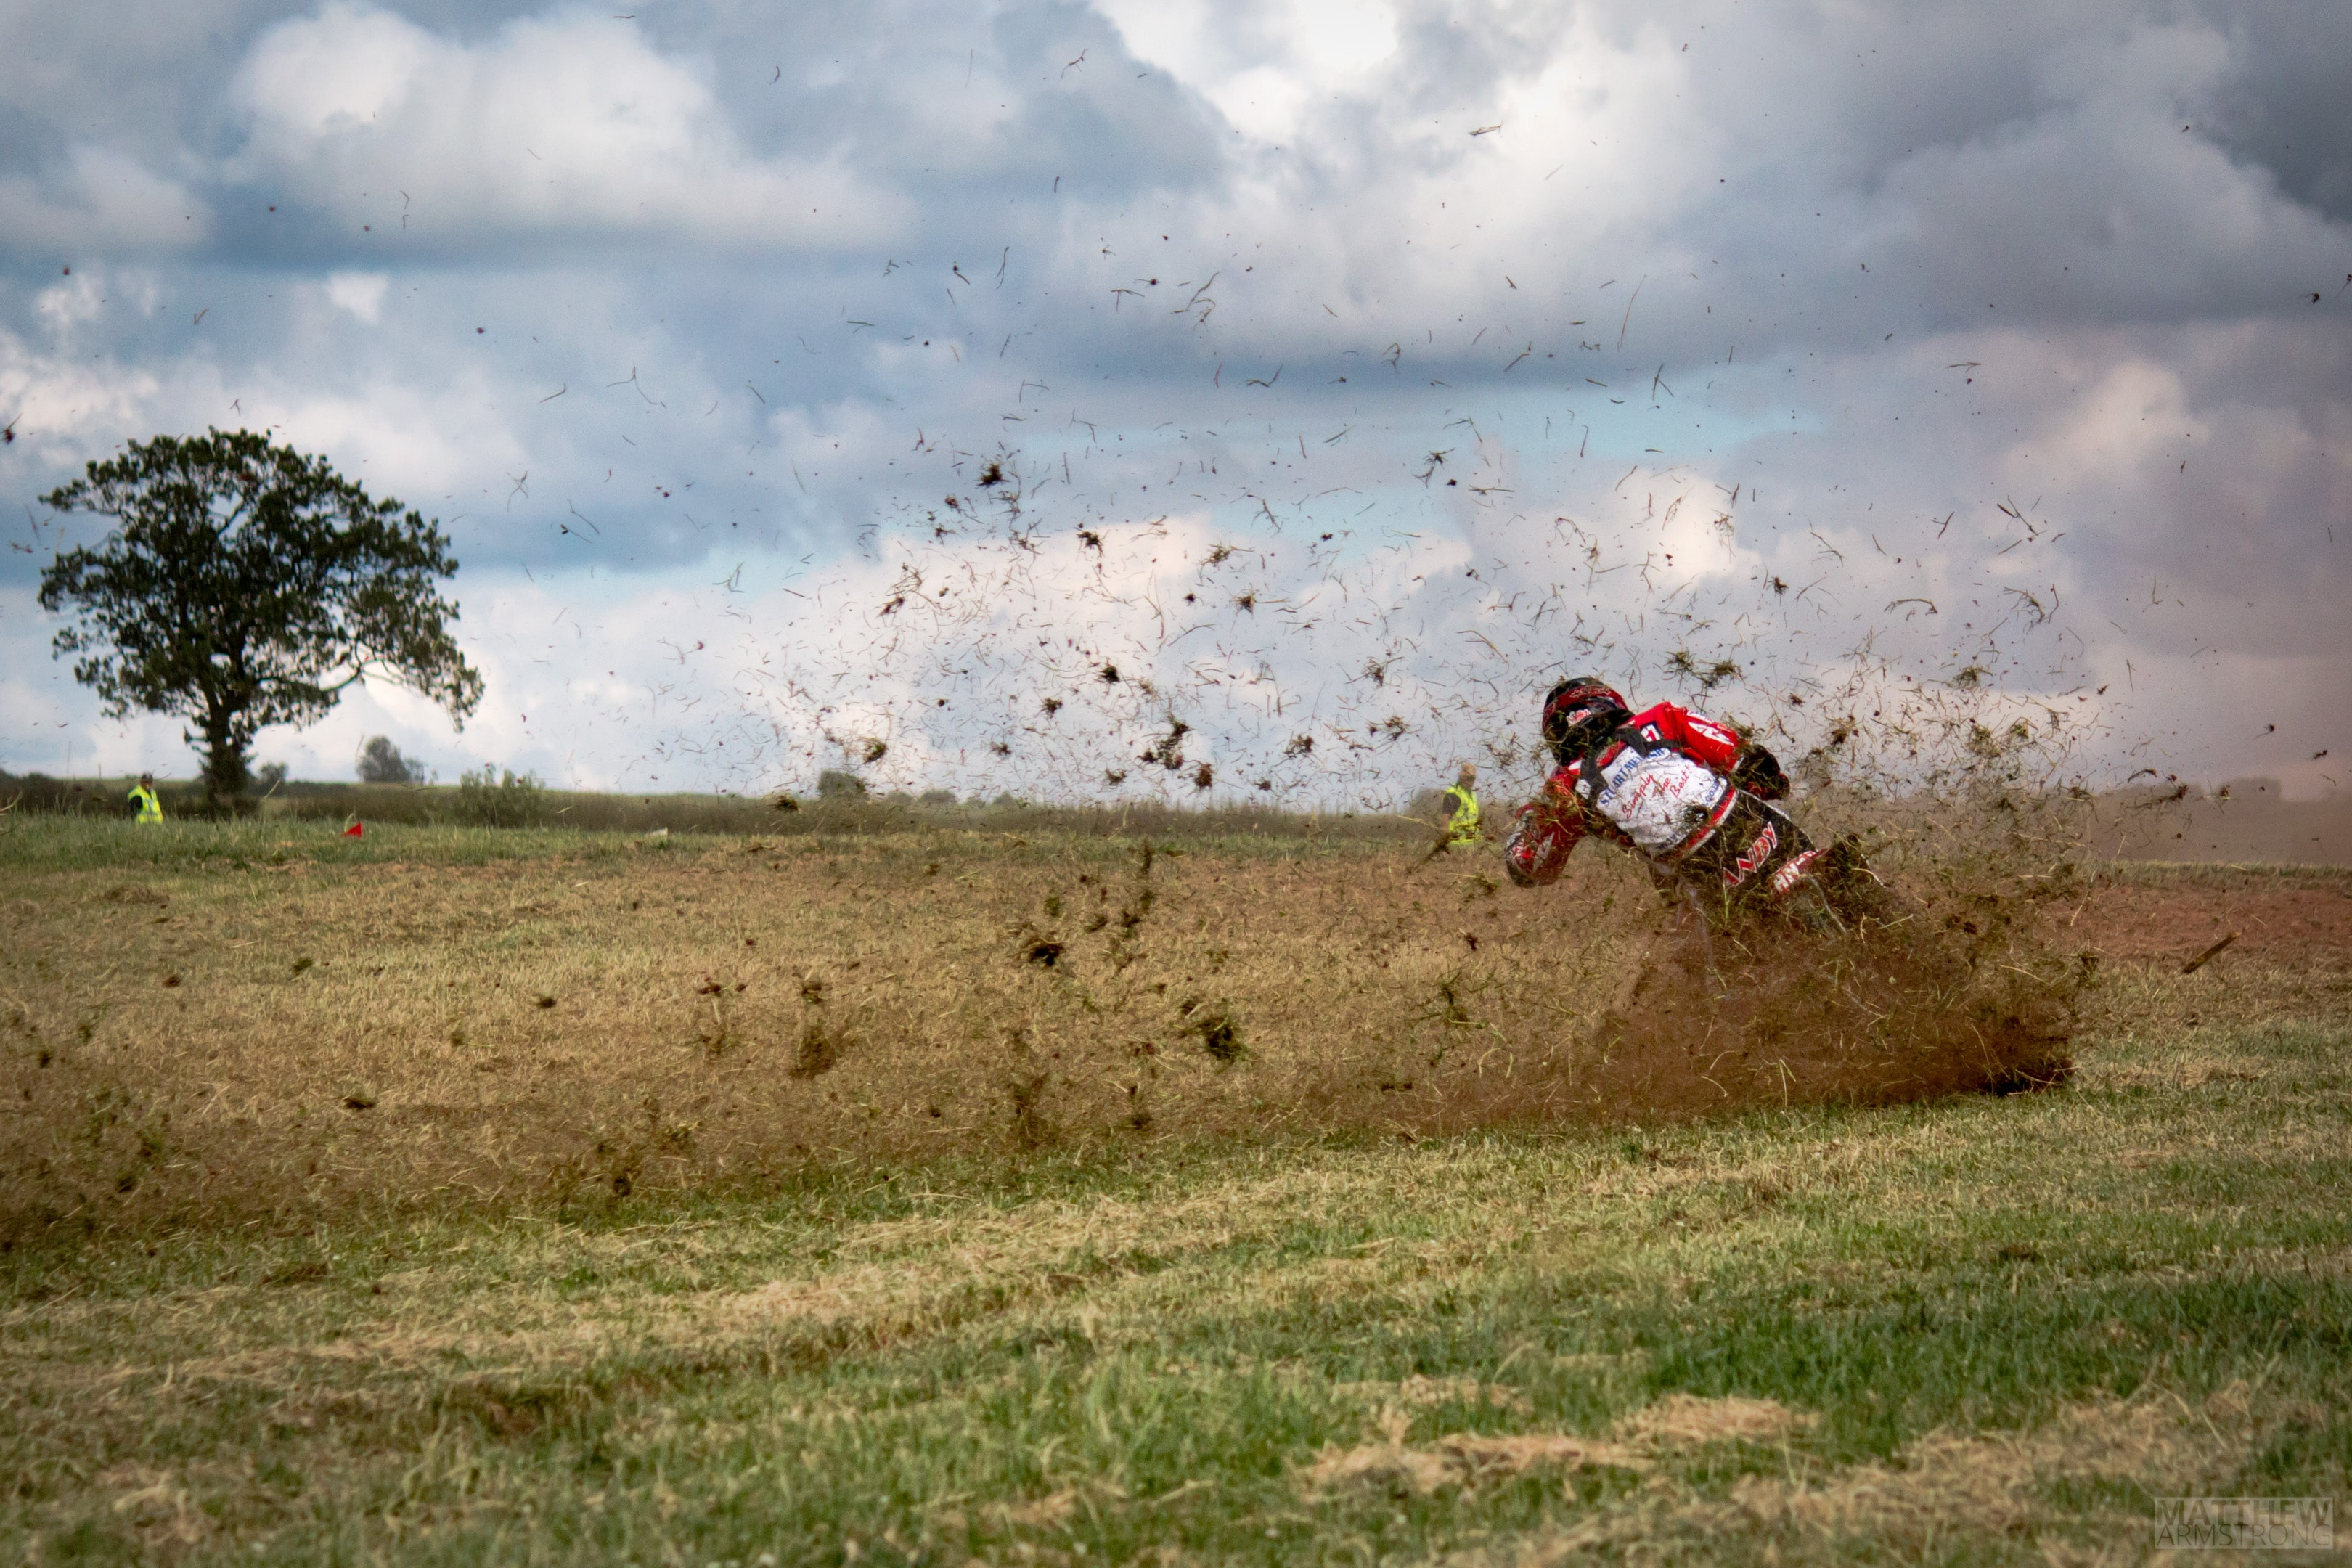 man riding motorcycle drifting on green field with mud at daytime